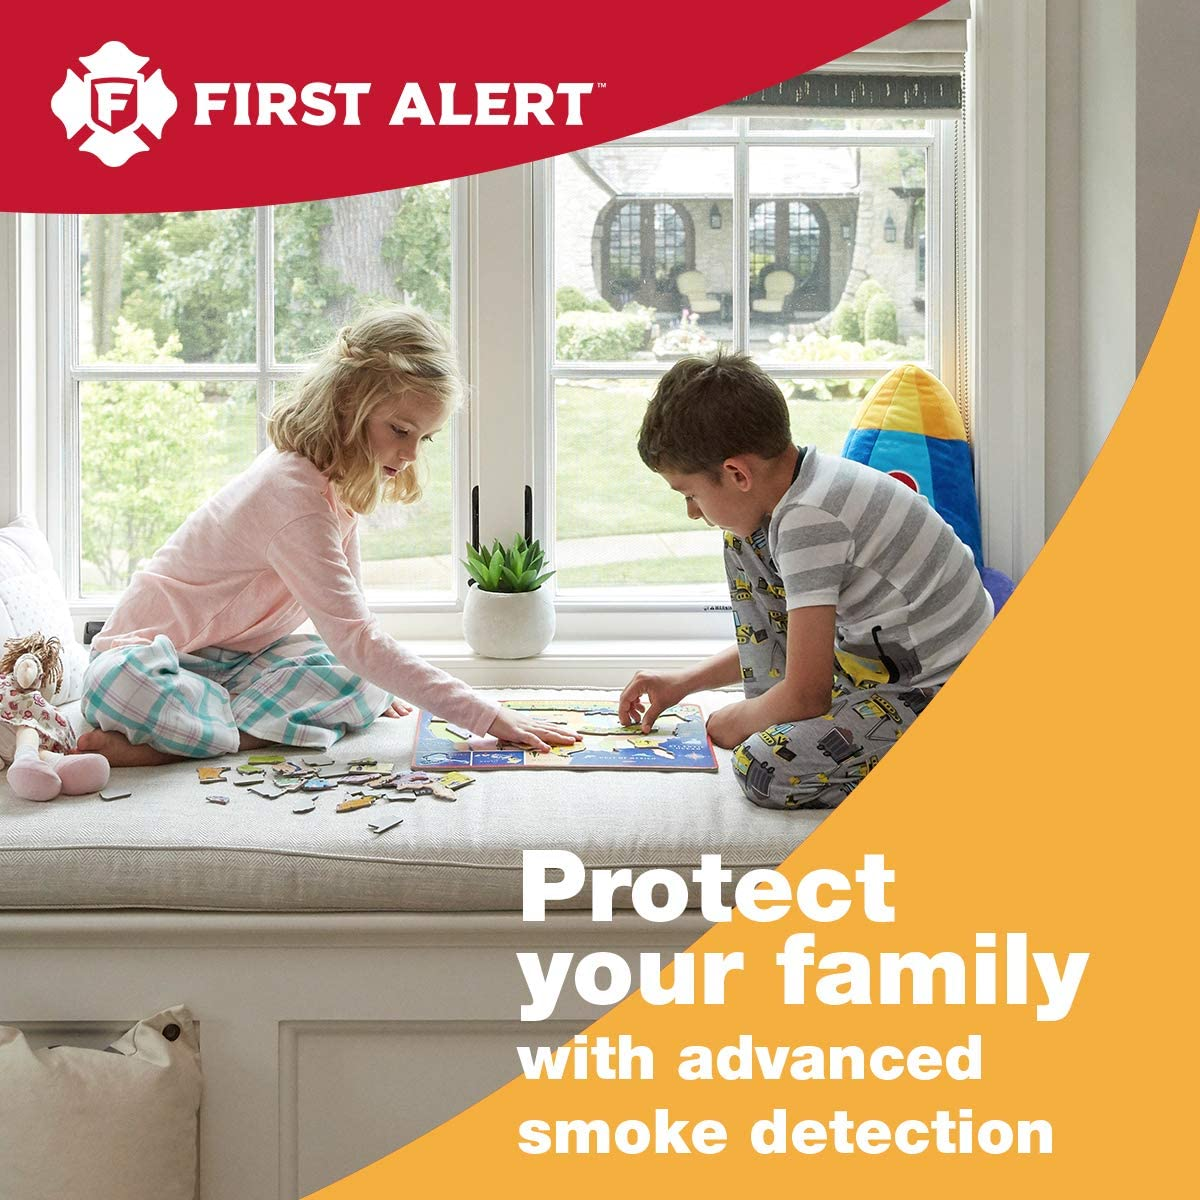 First Alert Smoke Detector Alarm | Battery Powered with Wireless Interconnect | 2-Pack, SA511CN2-3ST - Smoke Detectors -